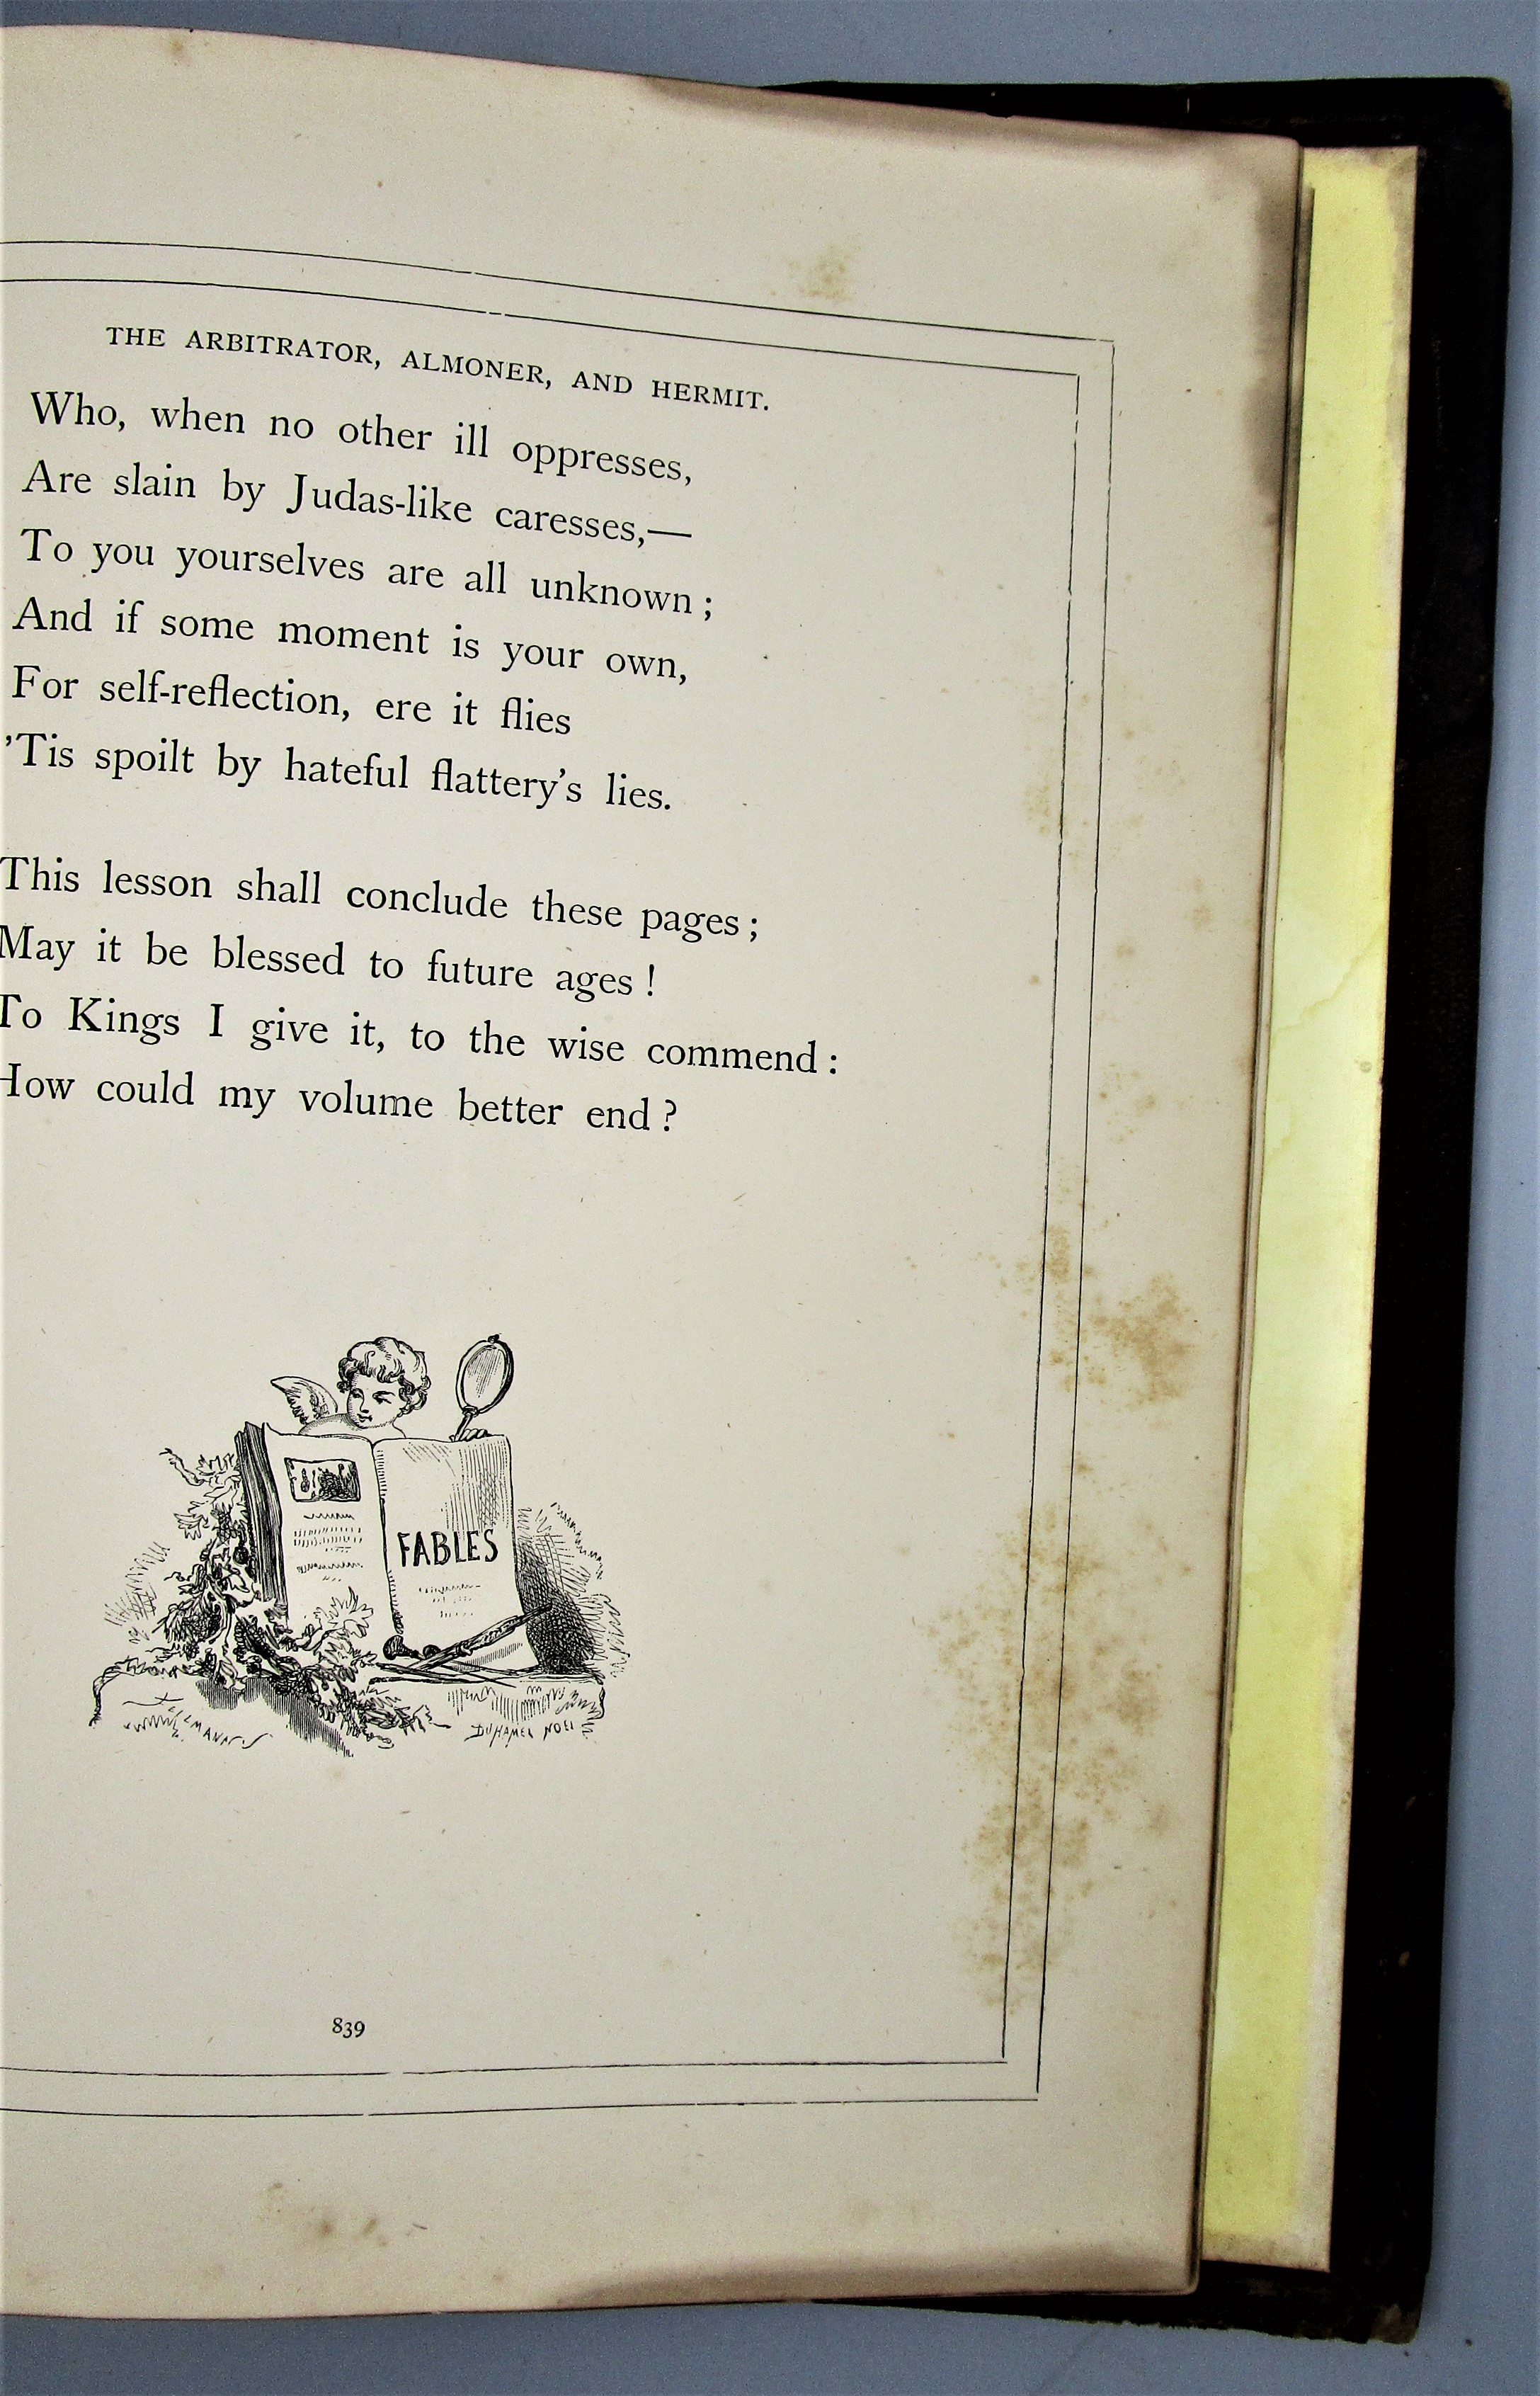 THE FABLES OF LA FONTAINE, illus. by Gutave Dore - c.1870